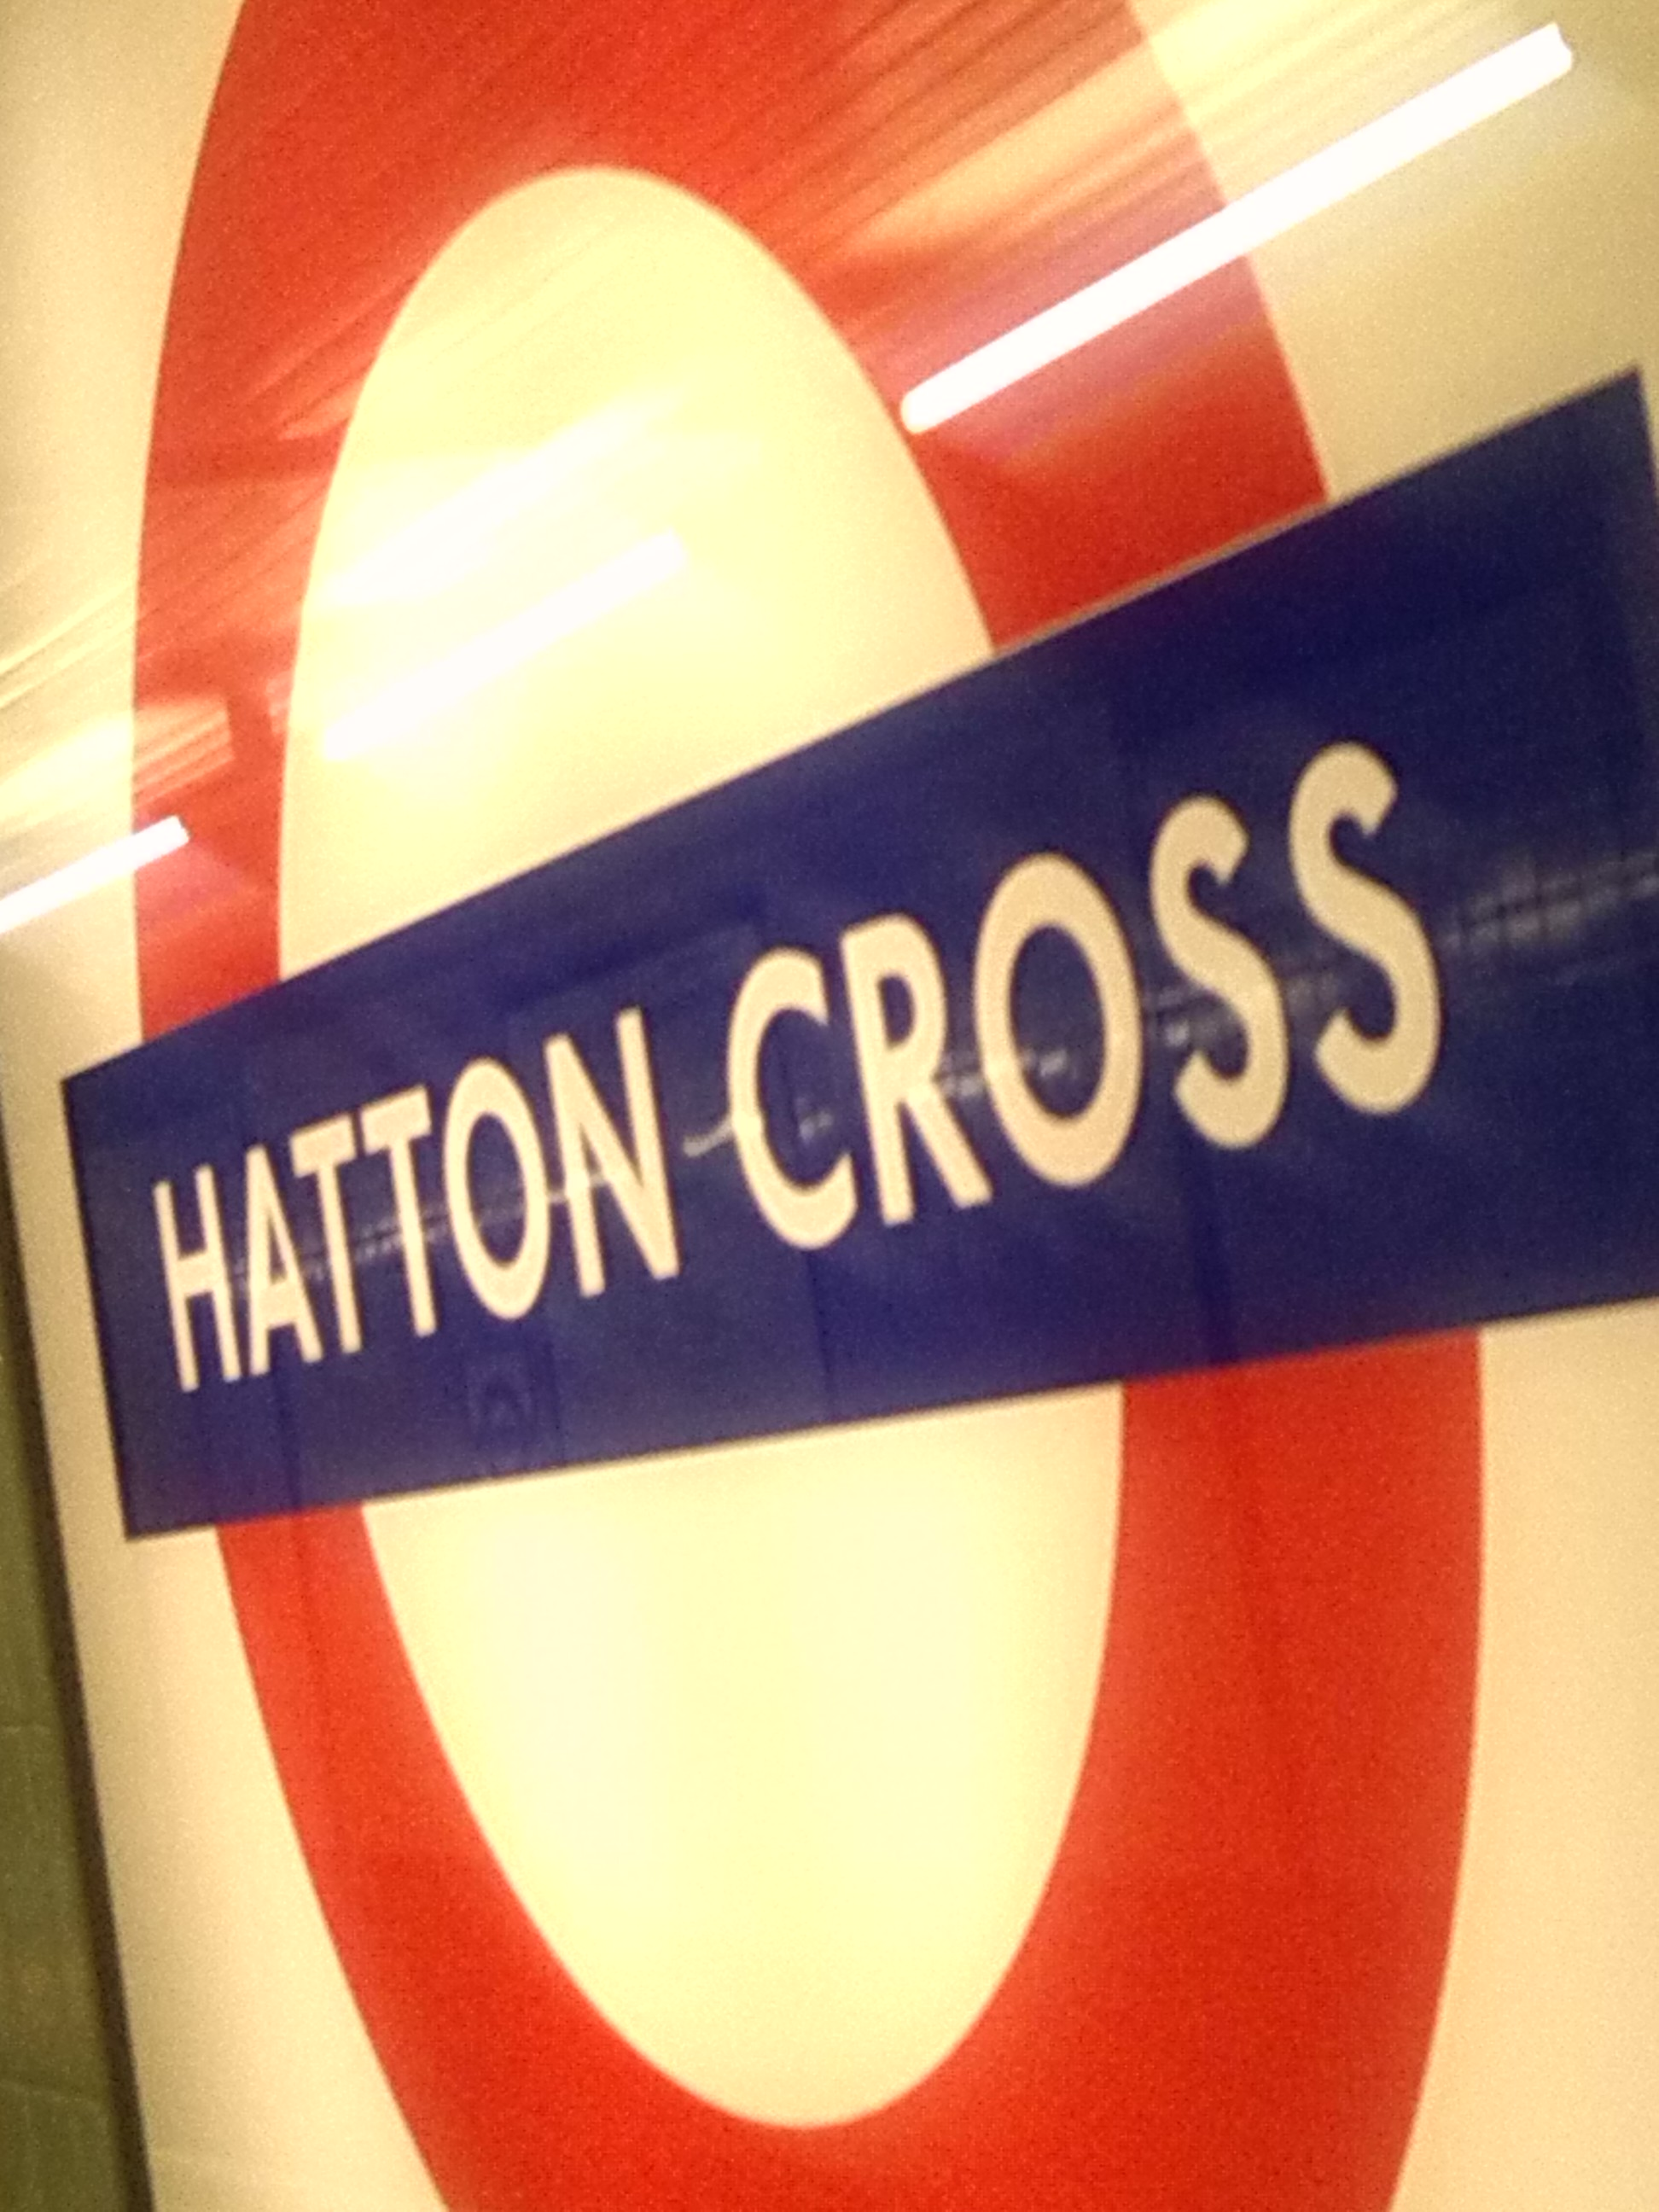 It's Hatton Cross!